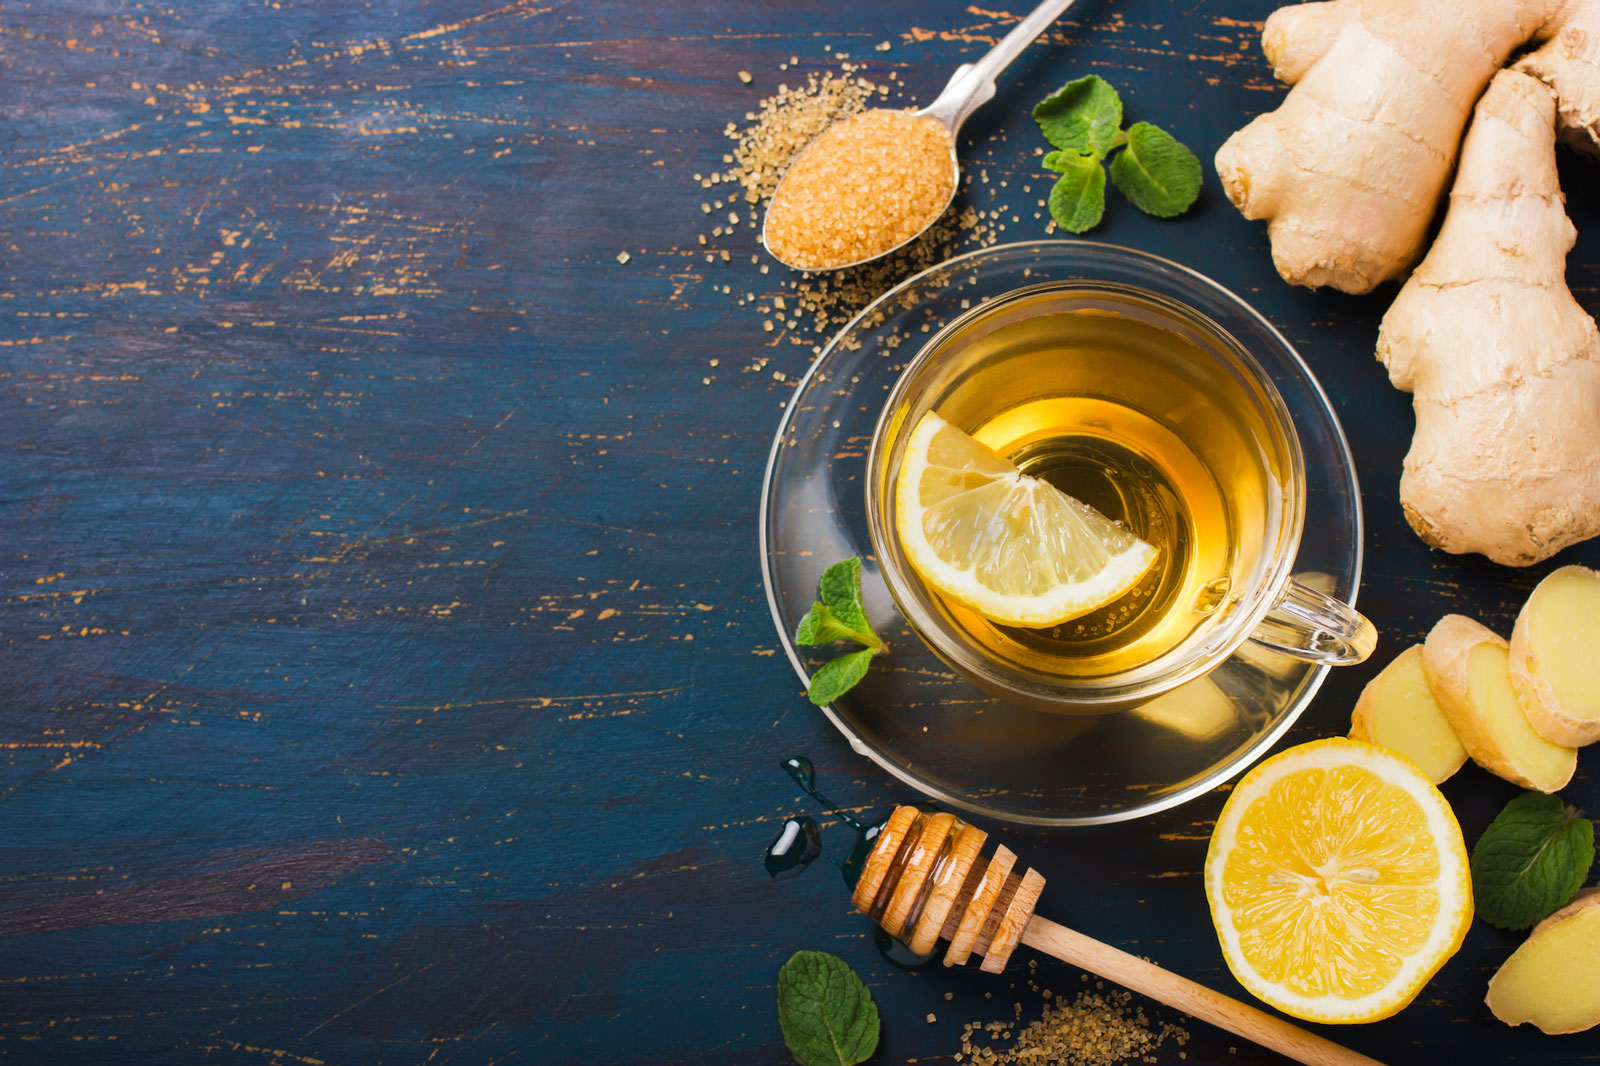 Ginger Tea With Lemon | How To Make Delicious Ginger Tea At Home